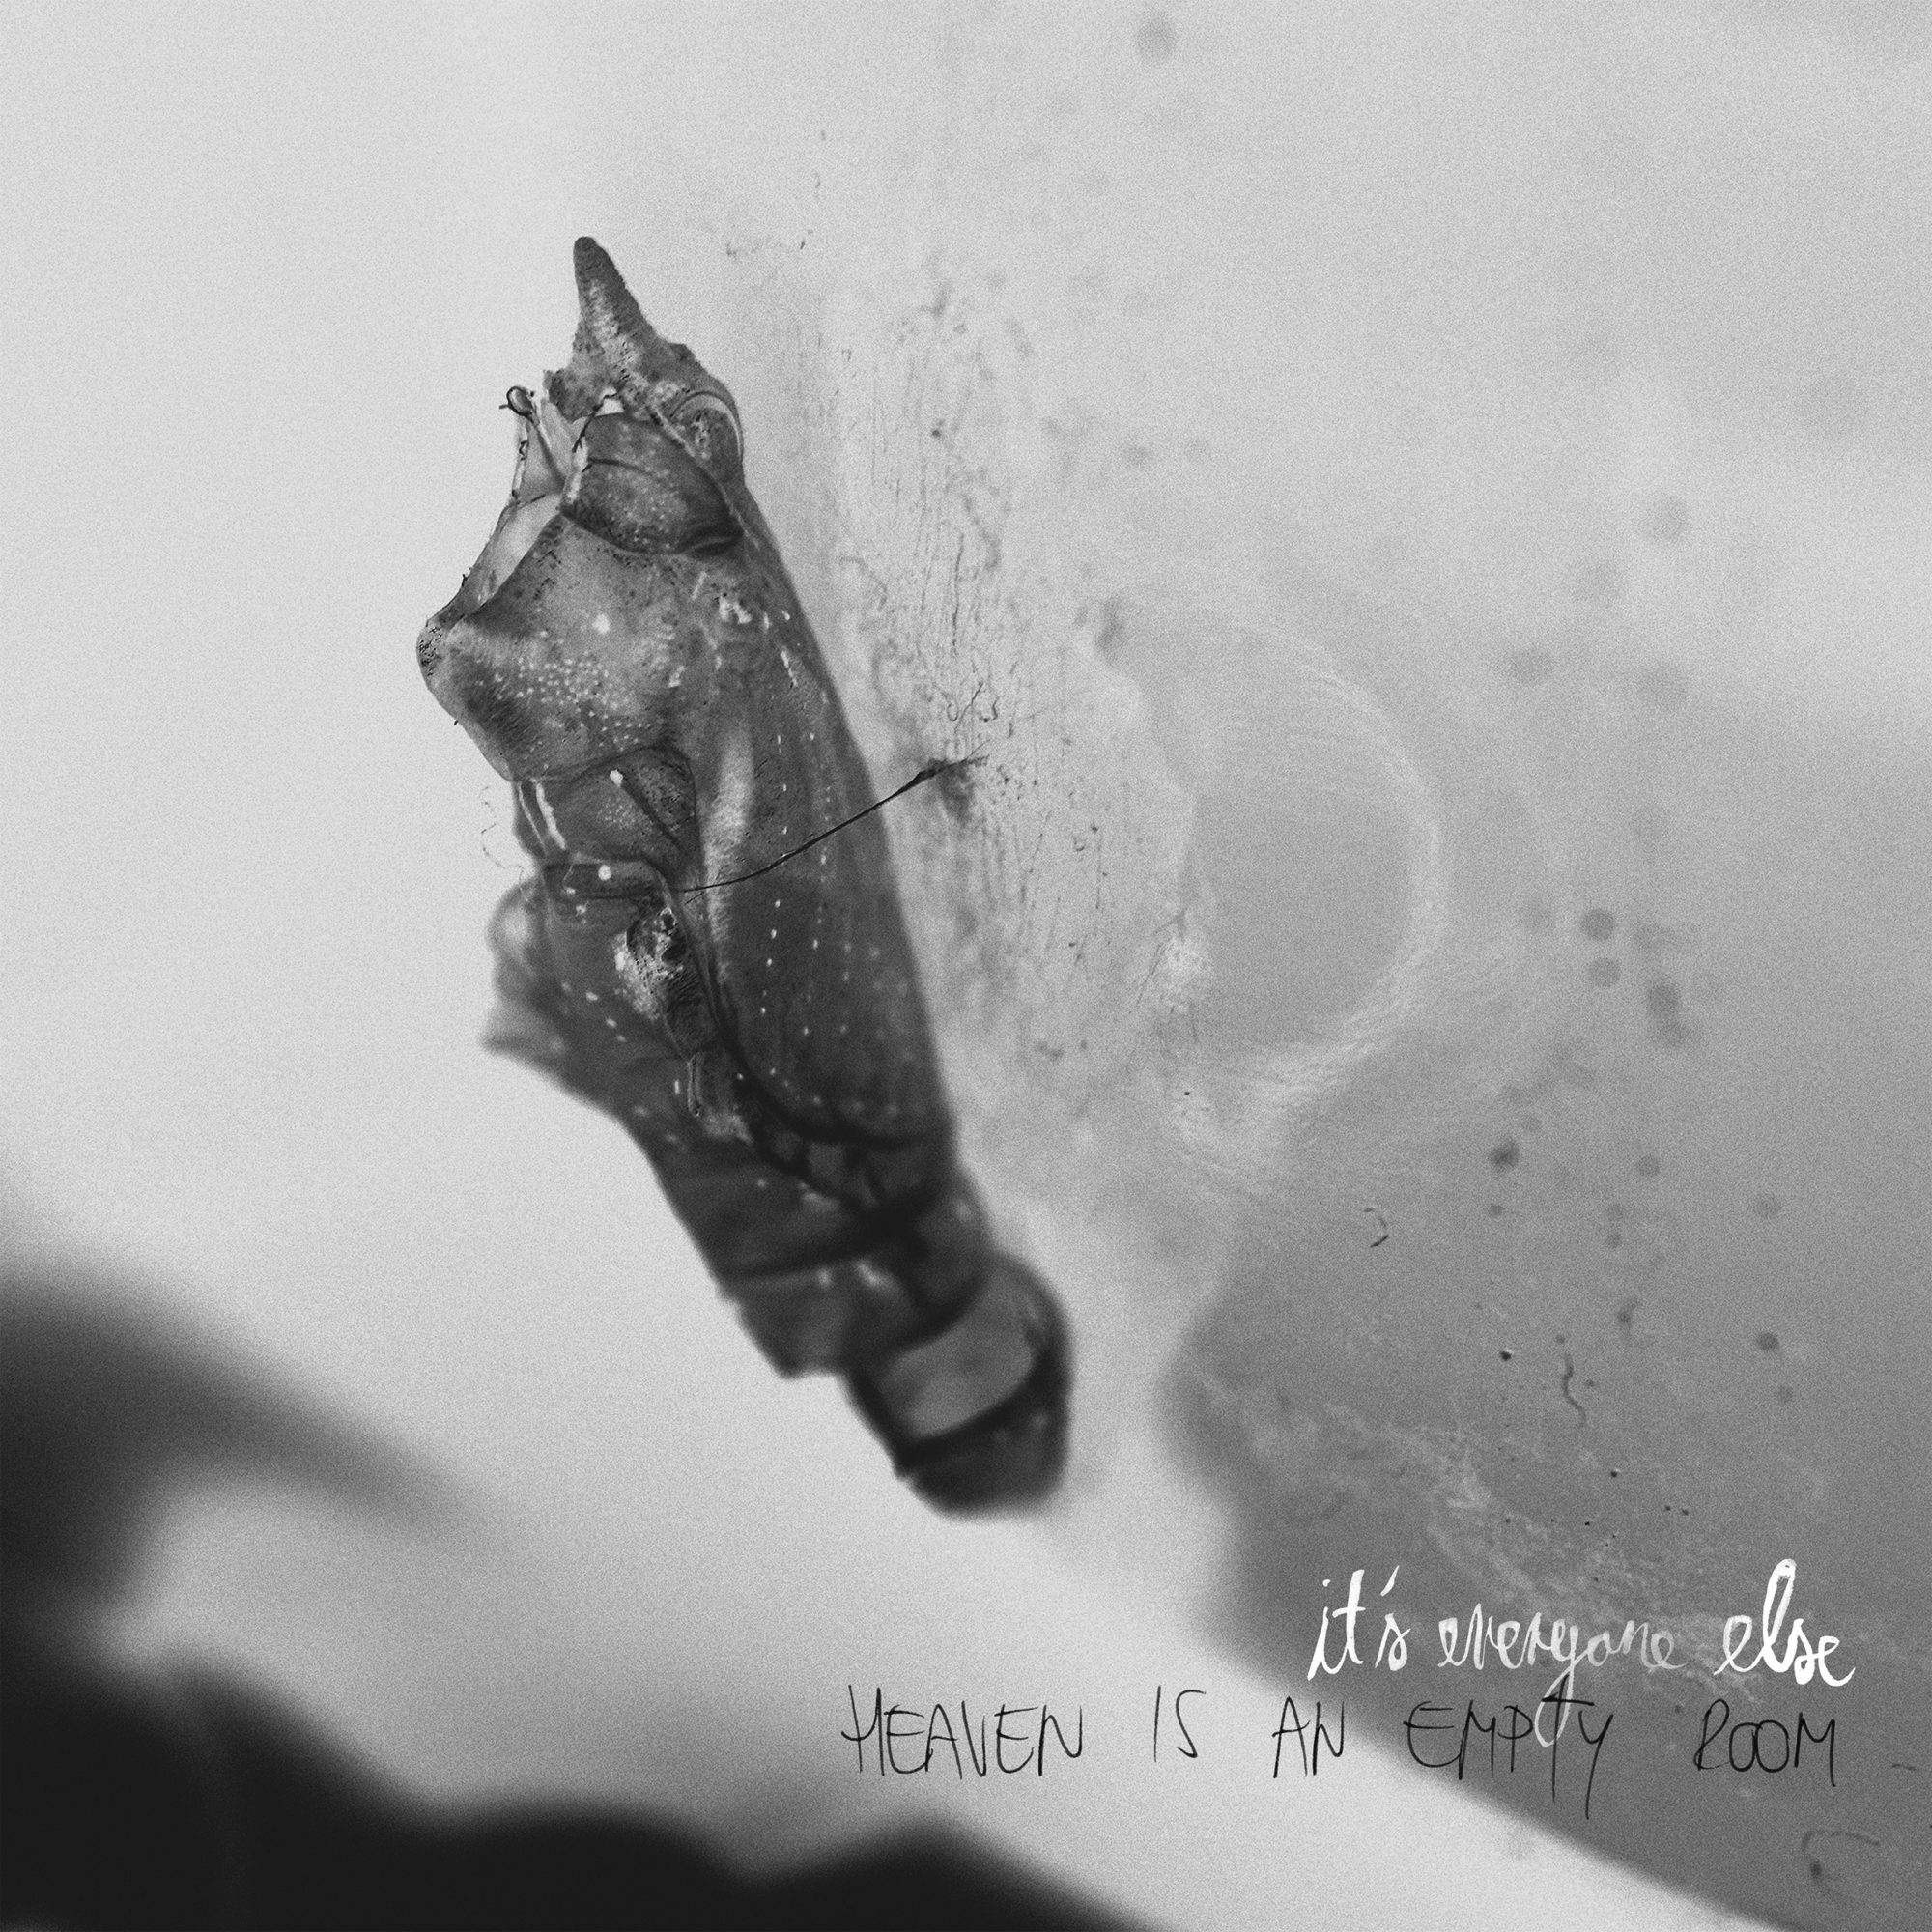 Its everyone else Band Music Heaven is an empty room album vinyl cover artwork